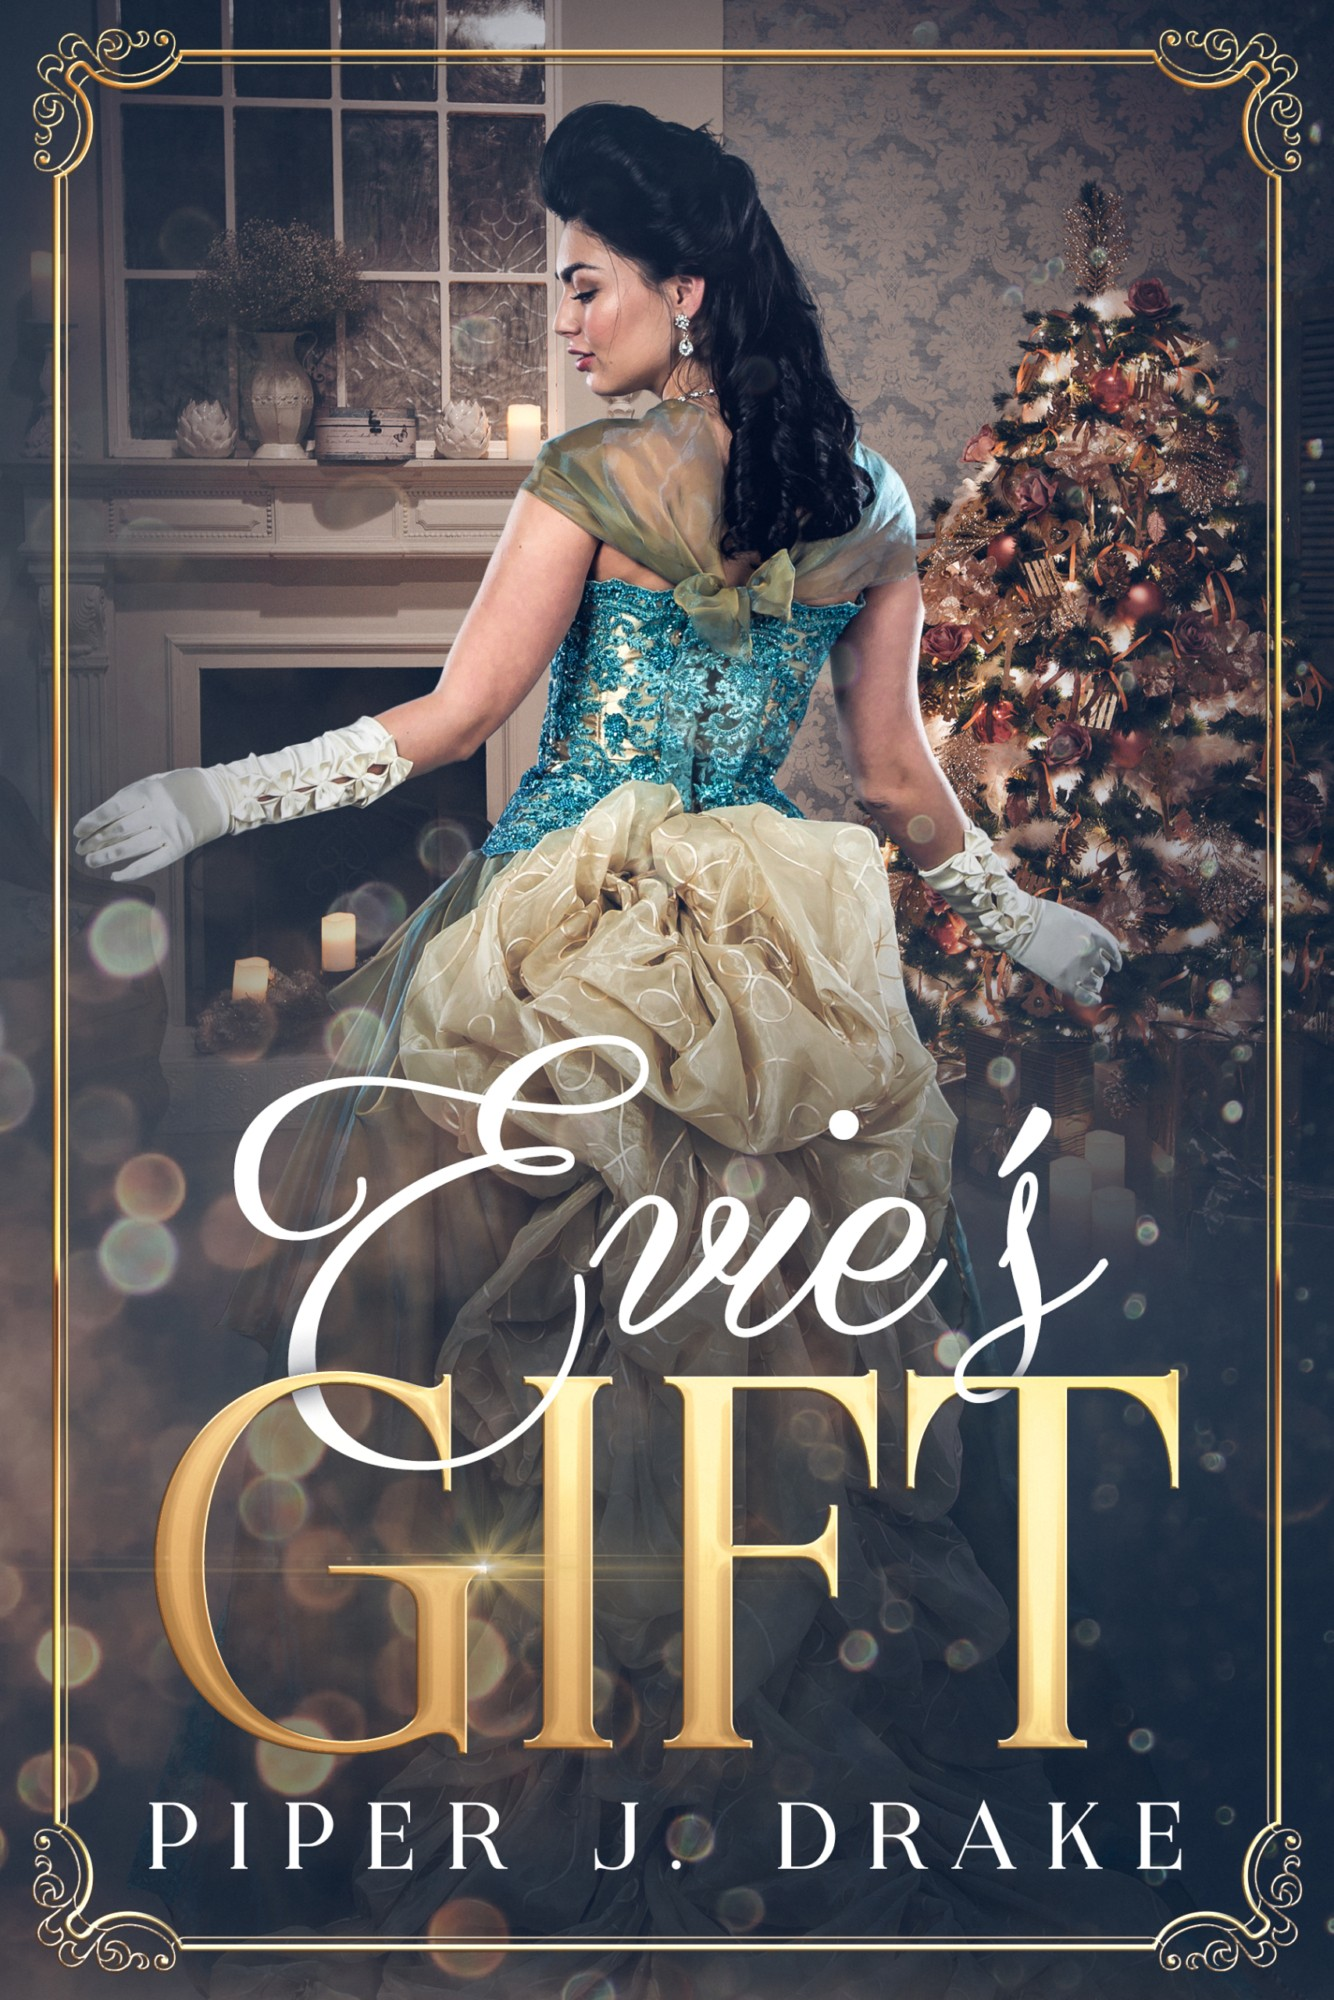 evies gift by piper j drake